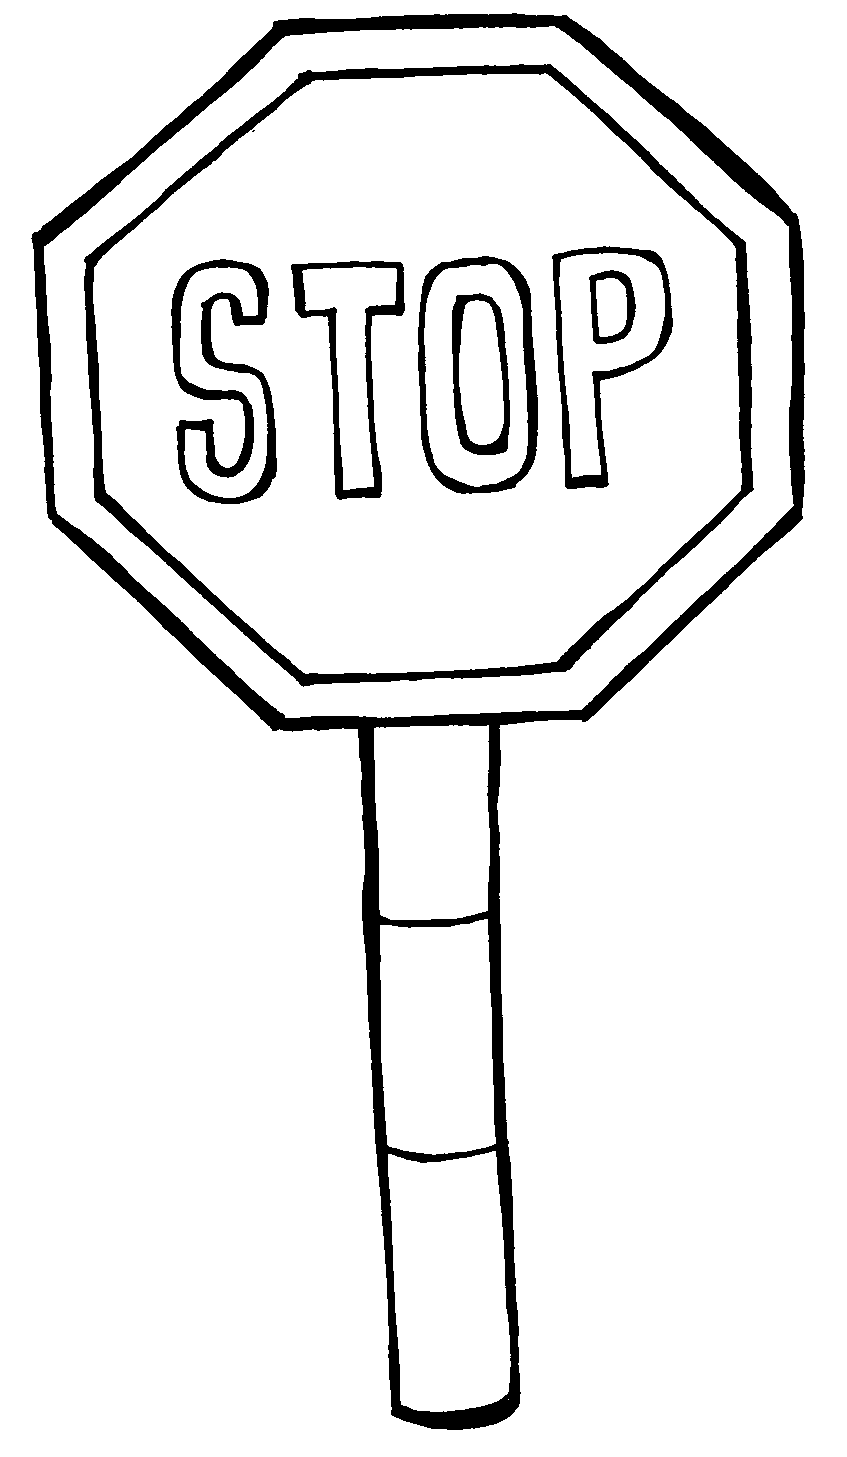 Road signs coloring pages clipart best for Stop sign coloring pages